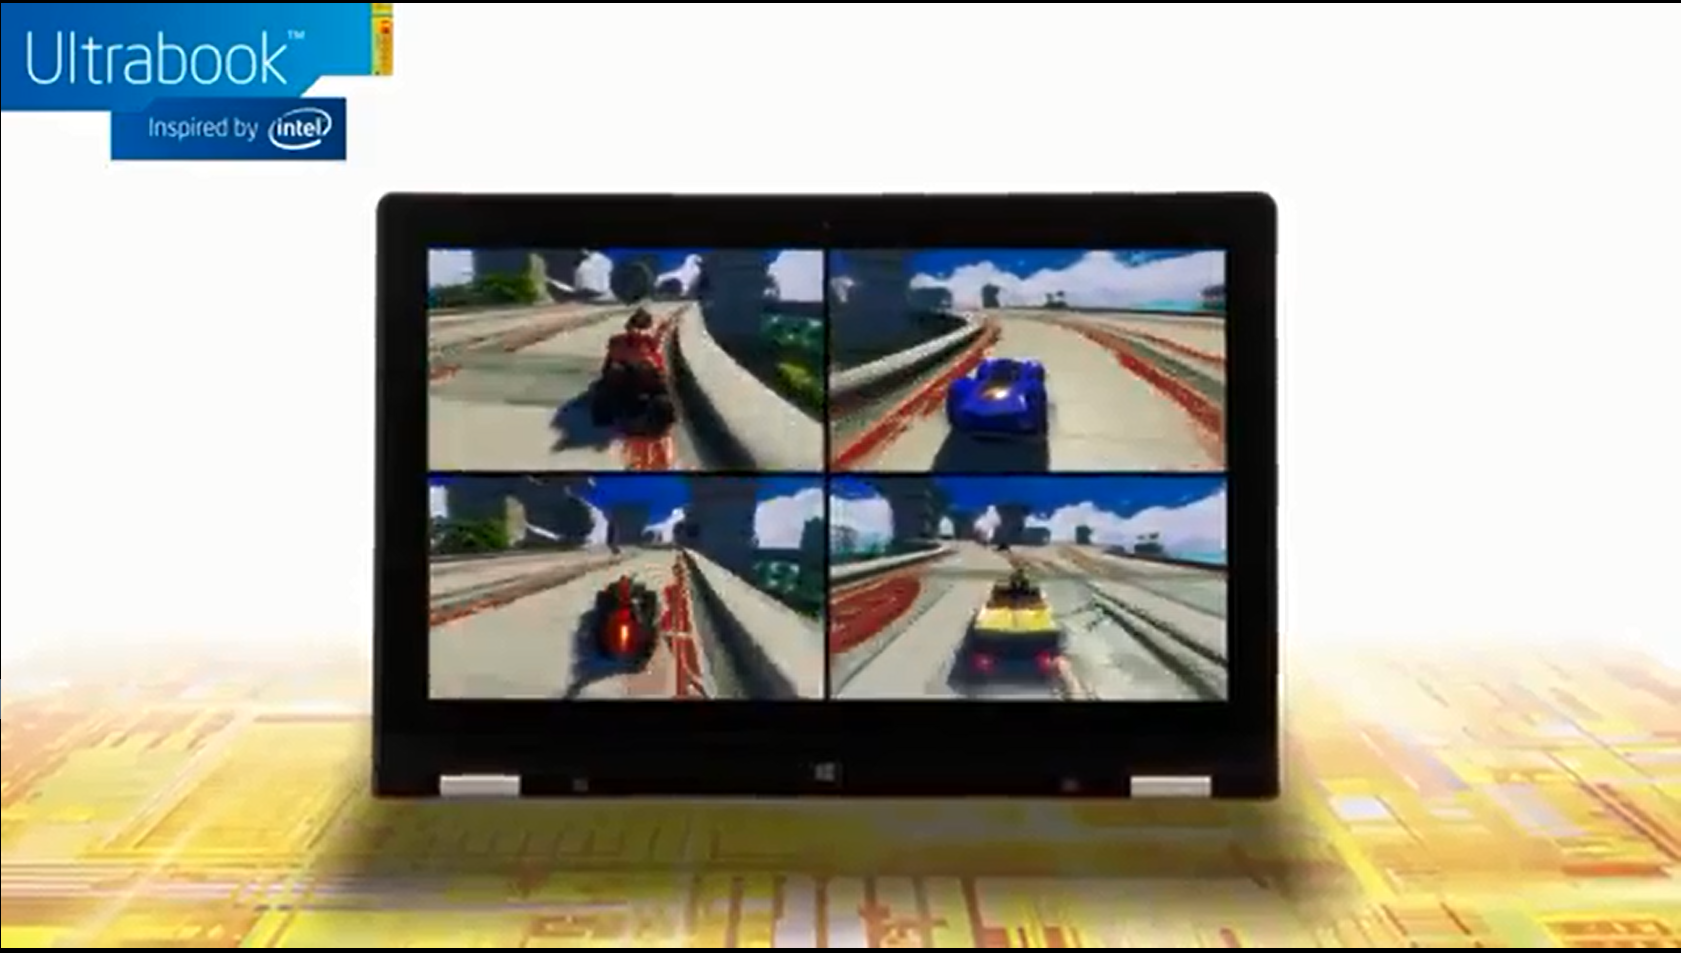 Photo of Sonic & All-Stars Racing Transformed with Ultrabook (apparently)